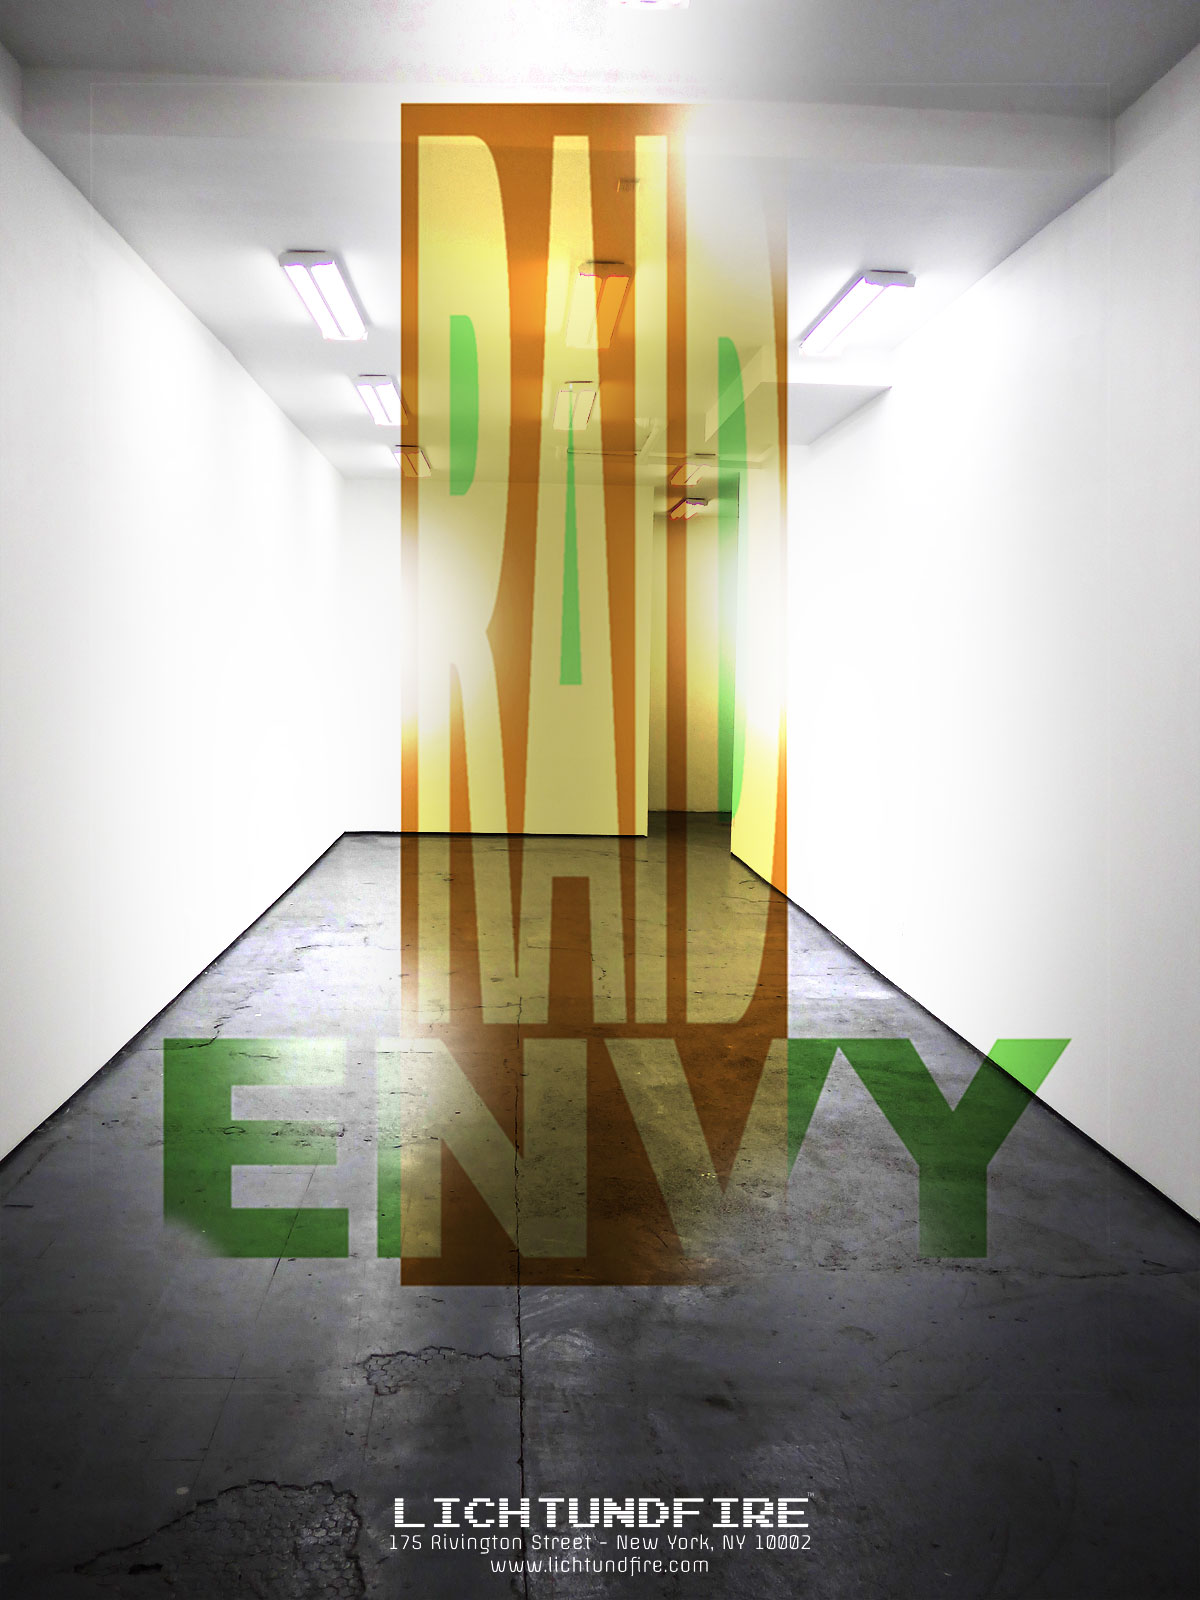 Lichtundfire Gallery Show Raid Envy curated by d Dominick Lombardi